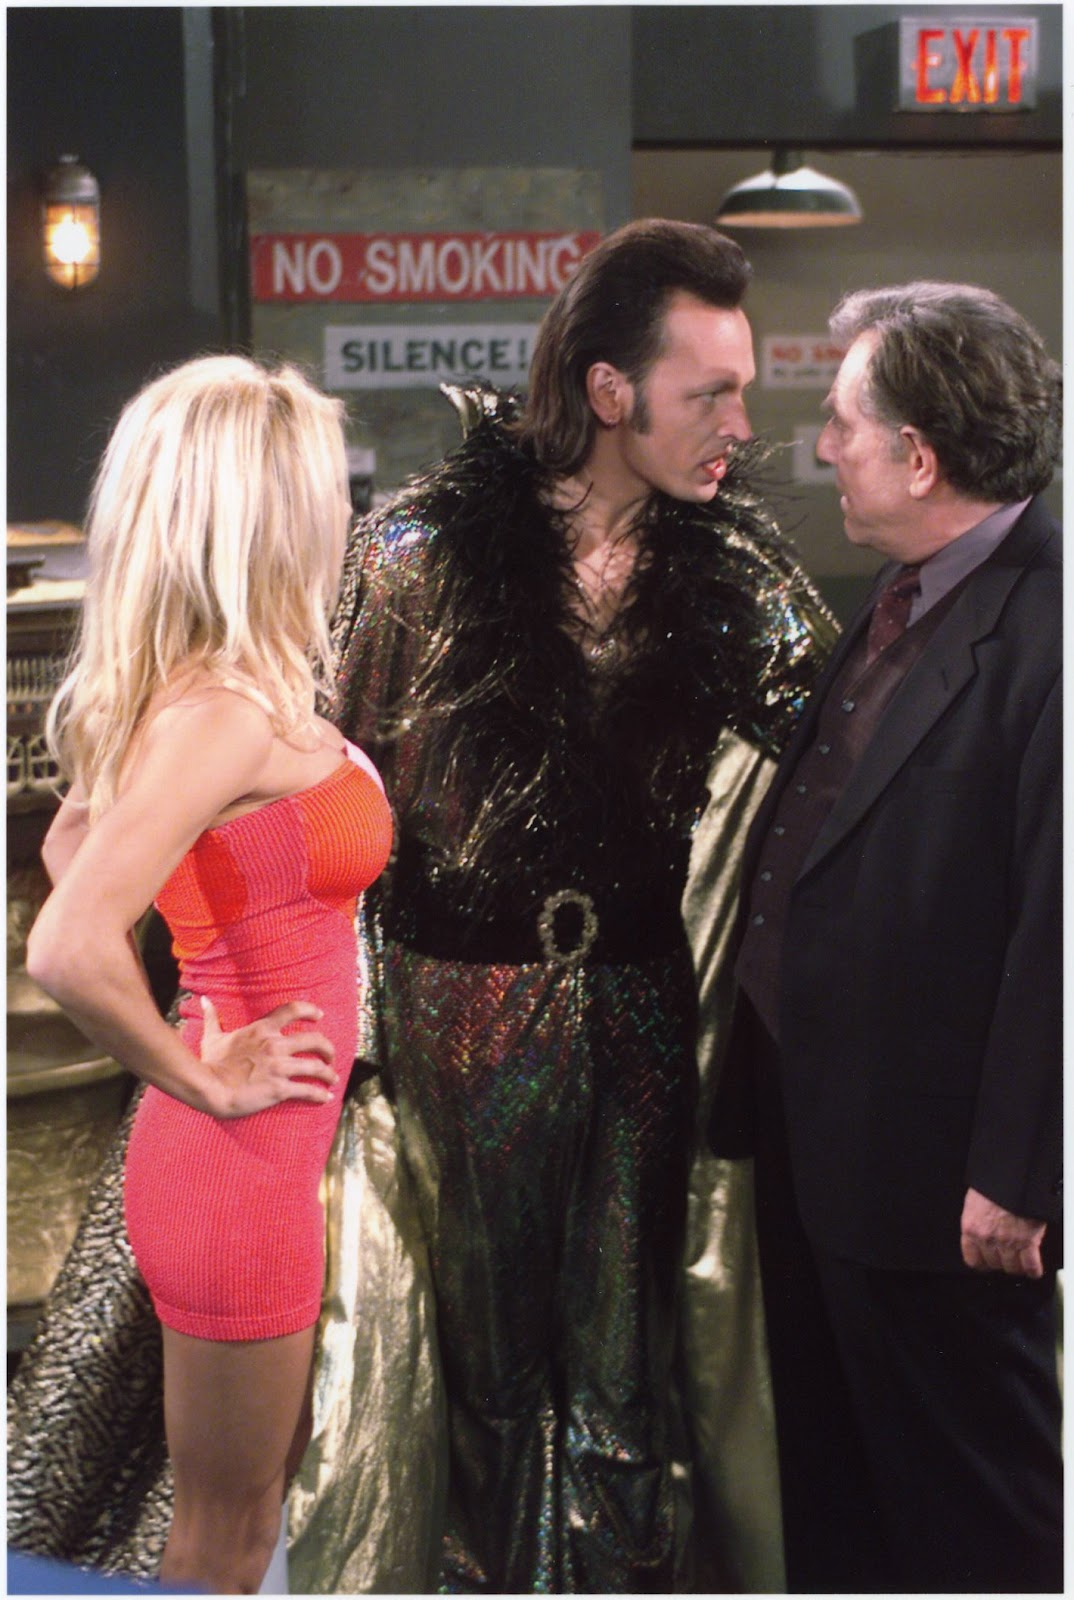 Steve Valentine is a movie actor, an illusionist, a musician